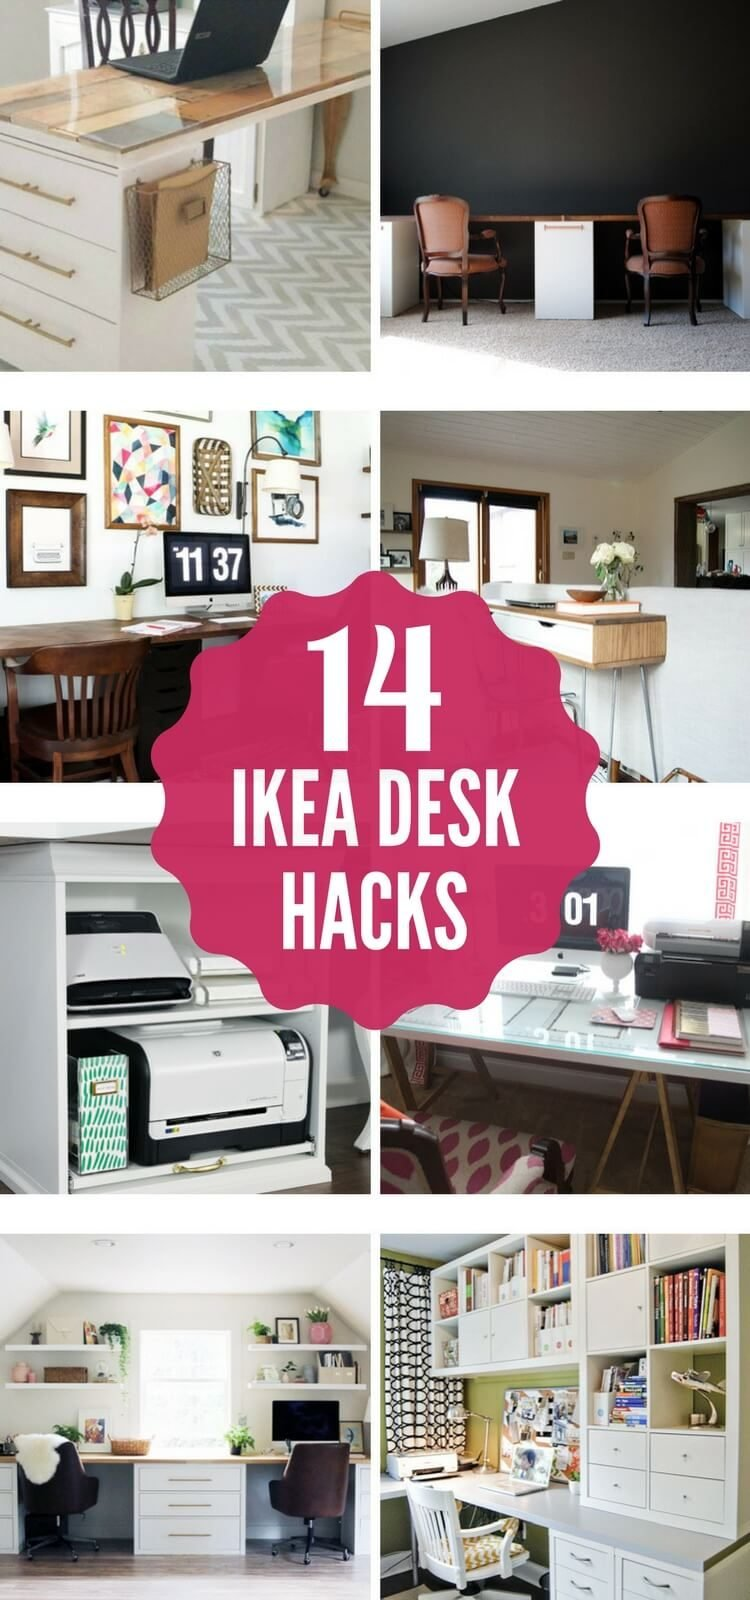 Desks can be so expensive, but these amazing DIY Ikea desk hacks will give you a stylish workspace on a small budget! I am obsessed with number 2 and 6!